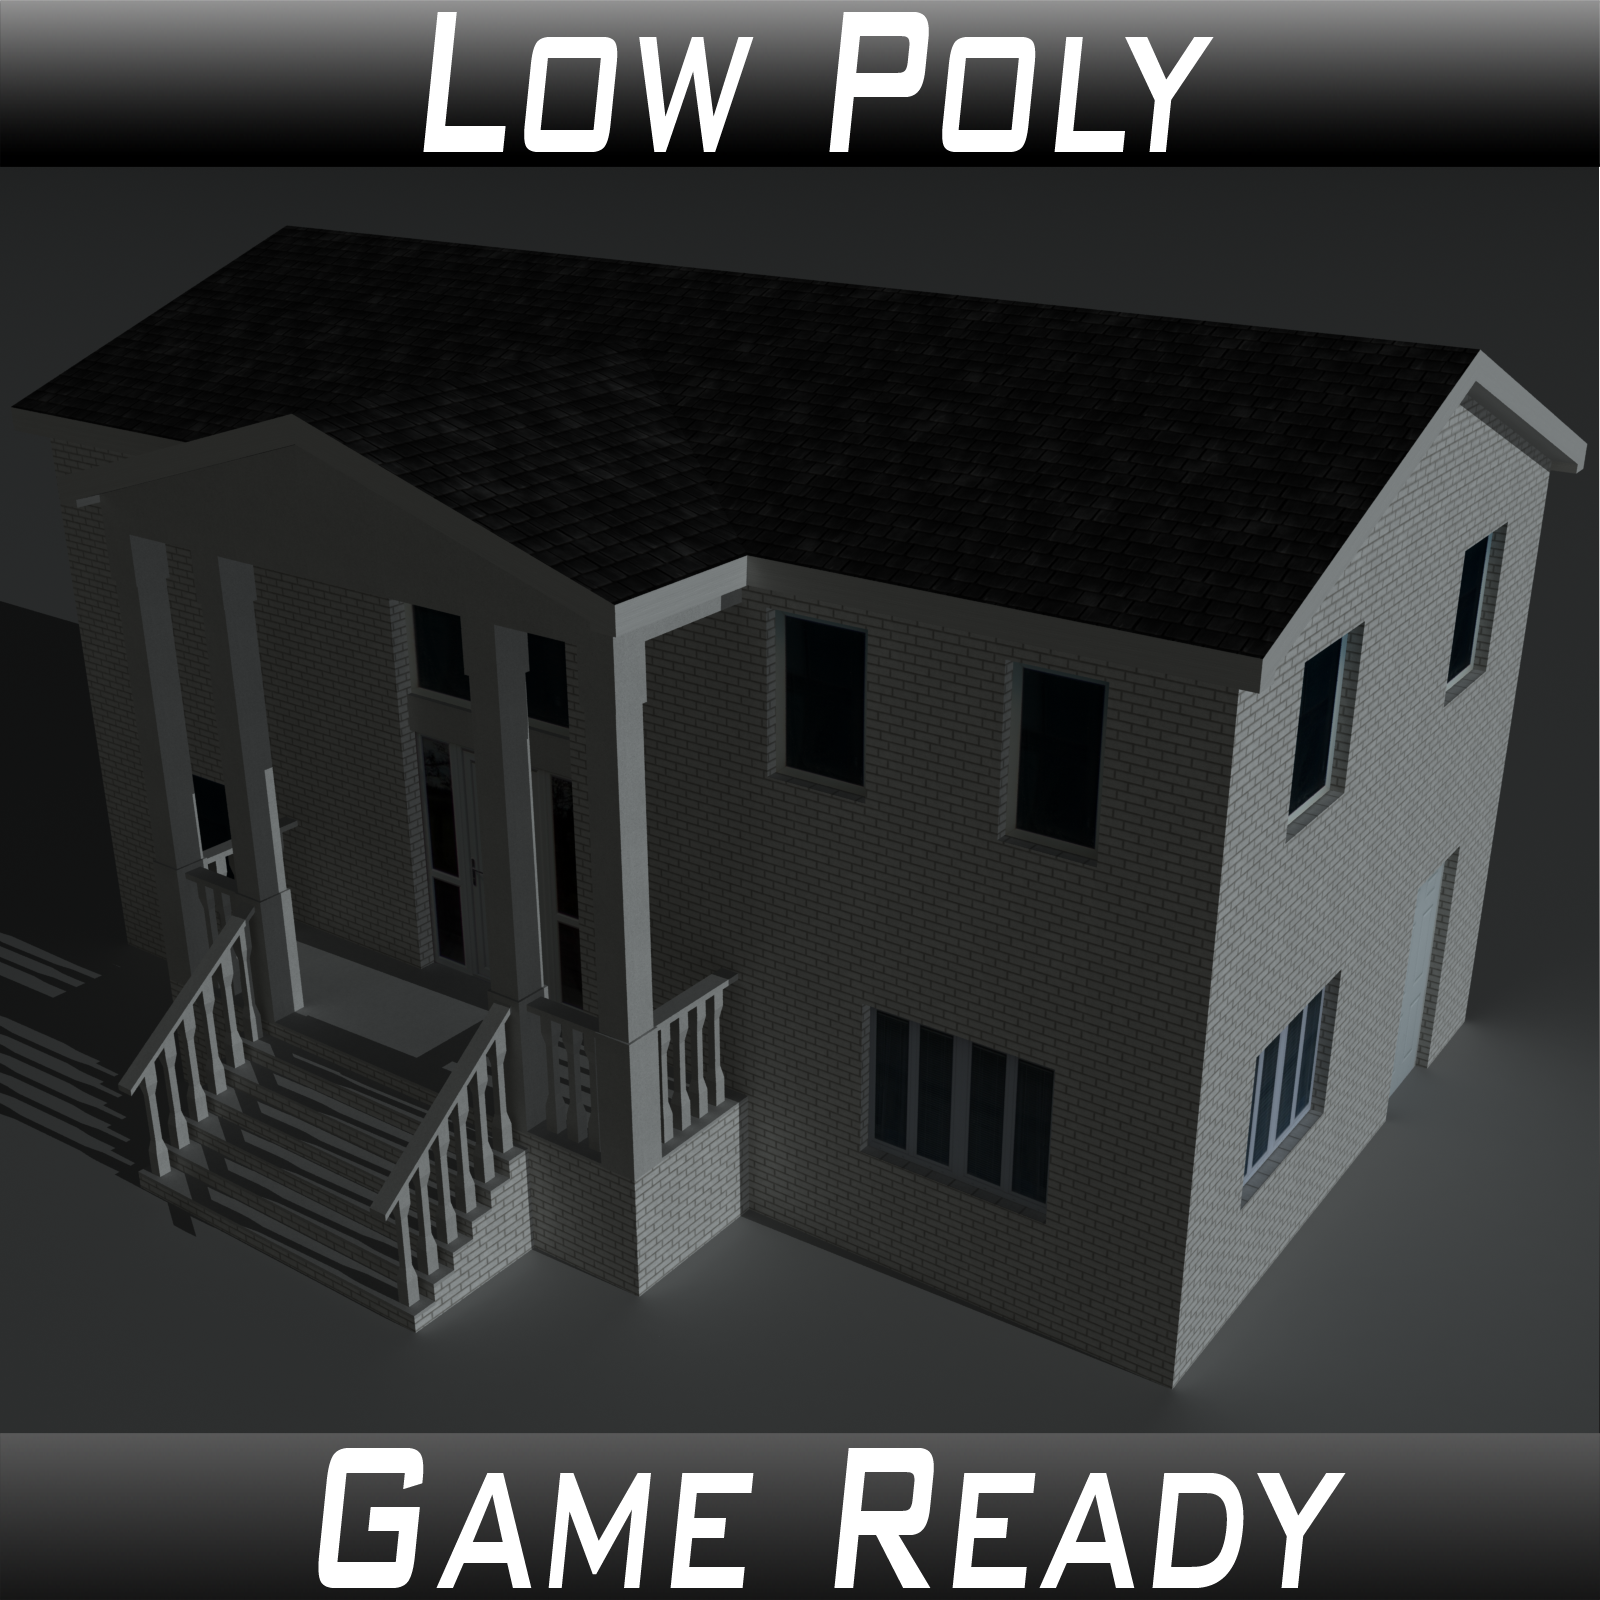 Low Poly House 10 - Extended Licence